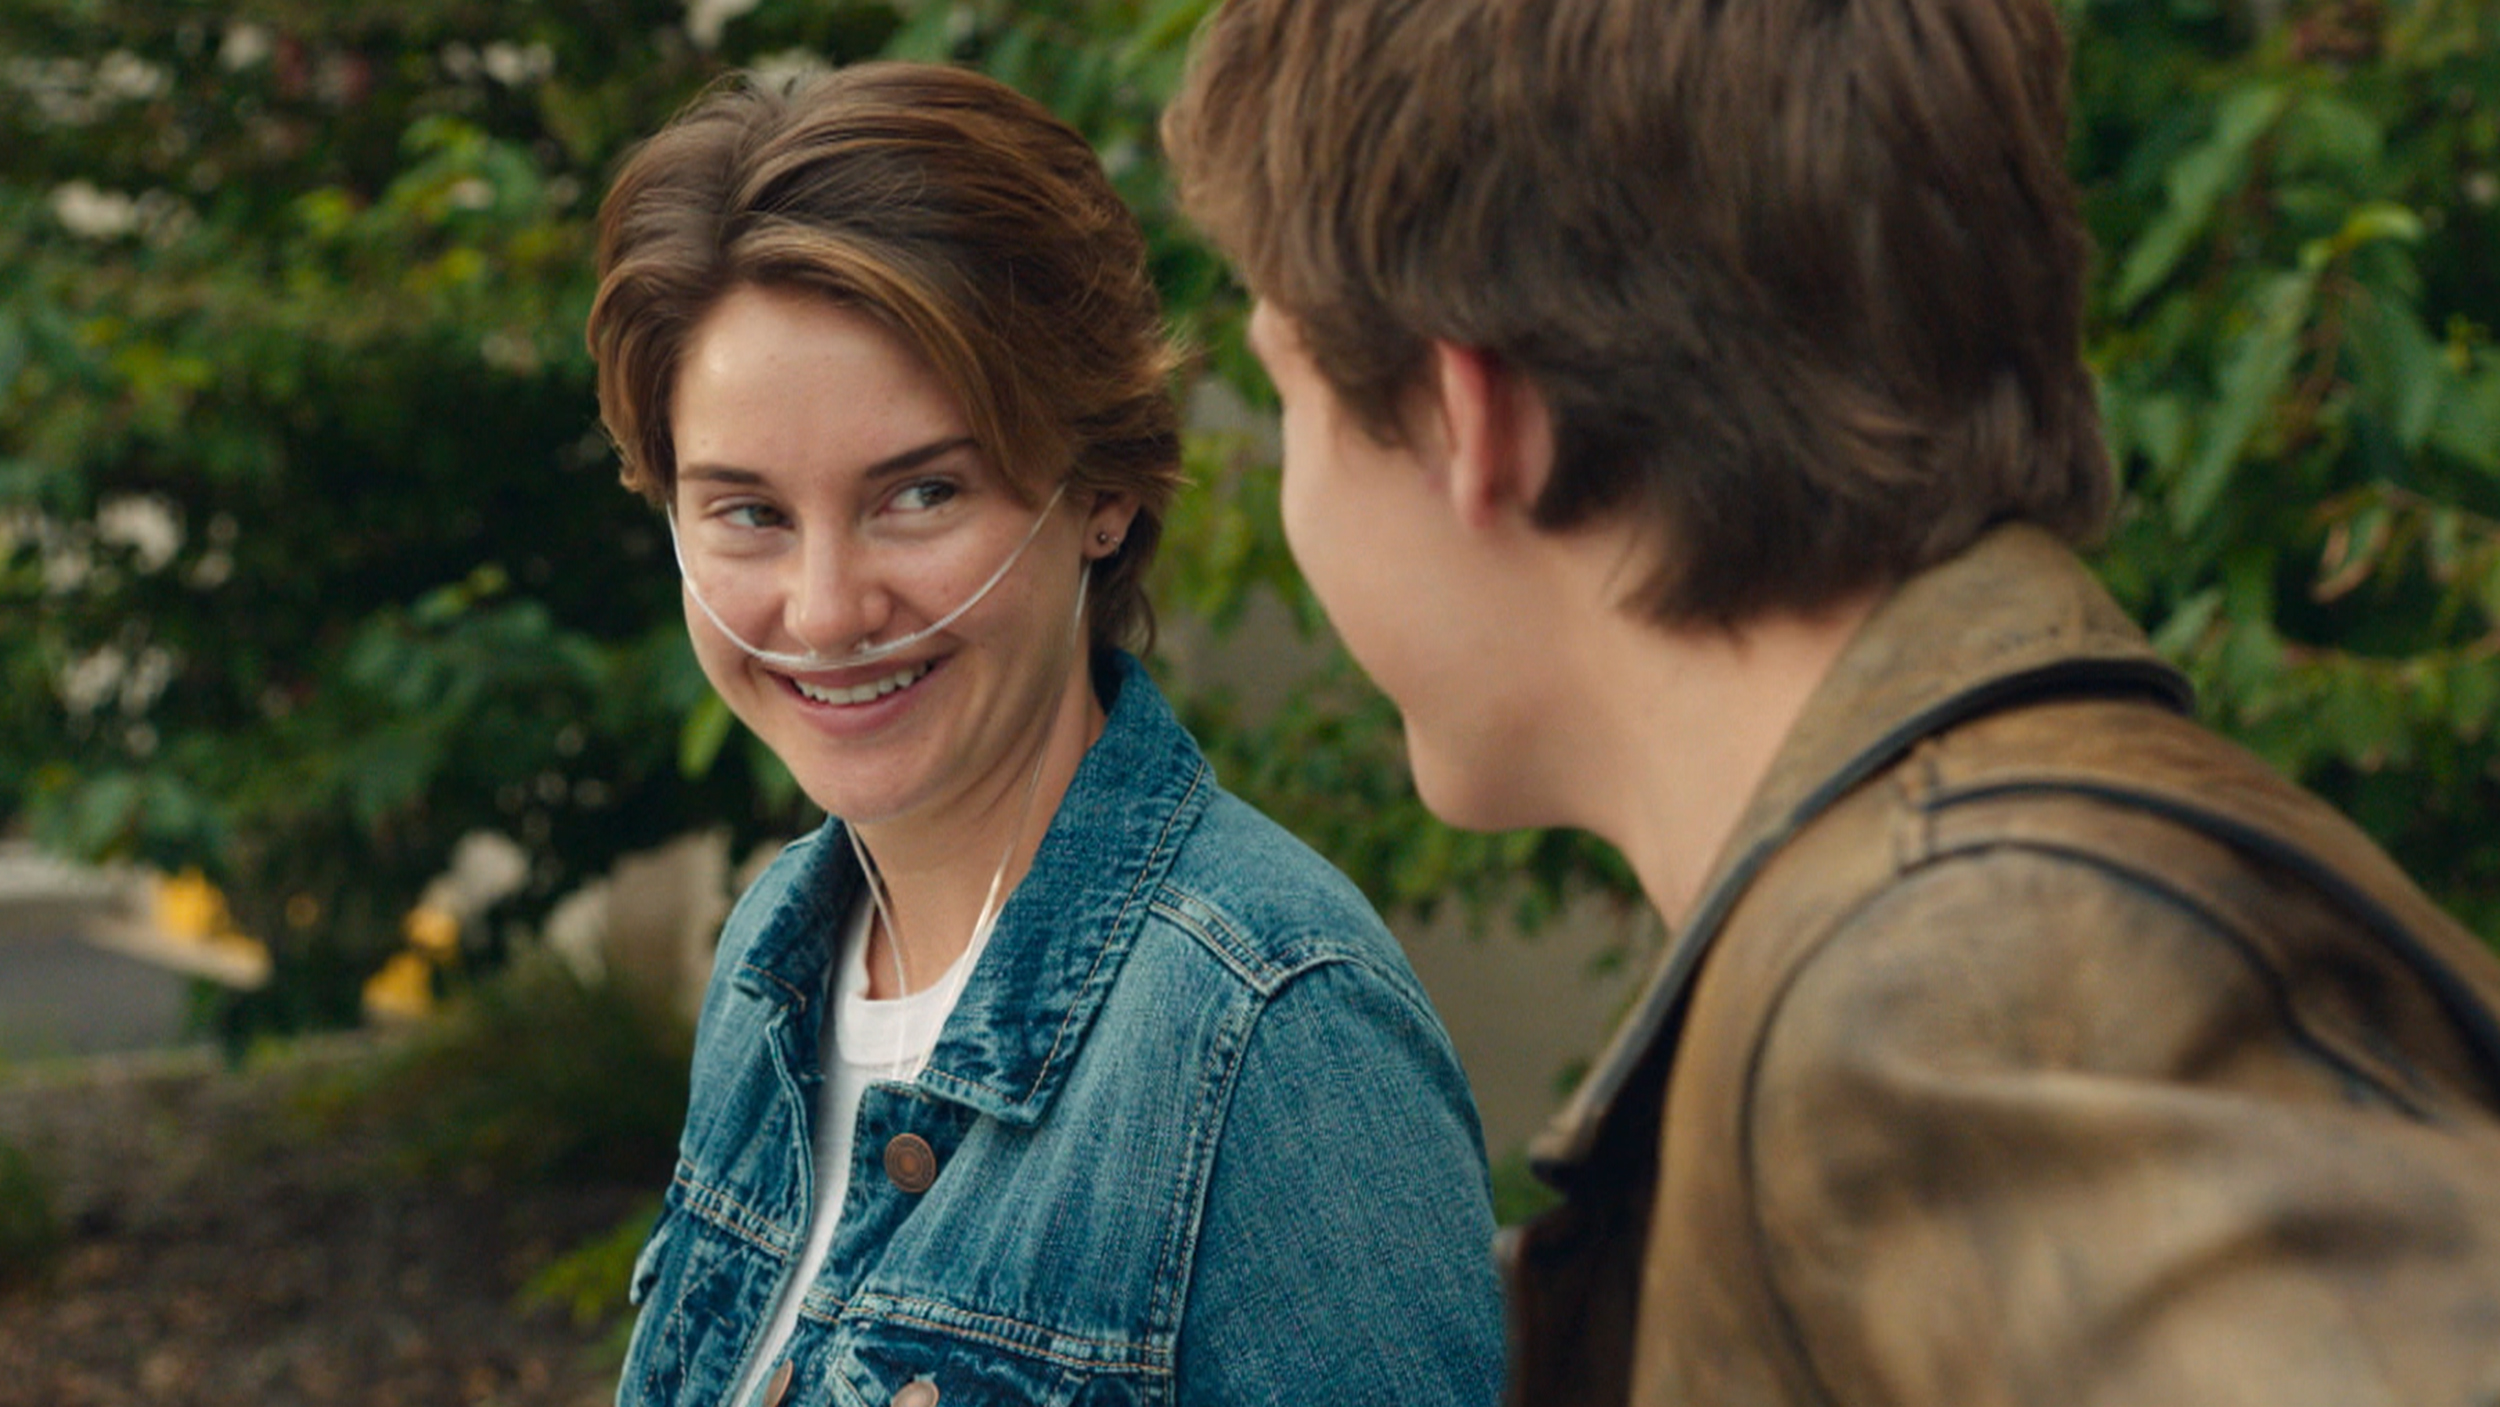 Shailene Woodley and Ansel Elgort in